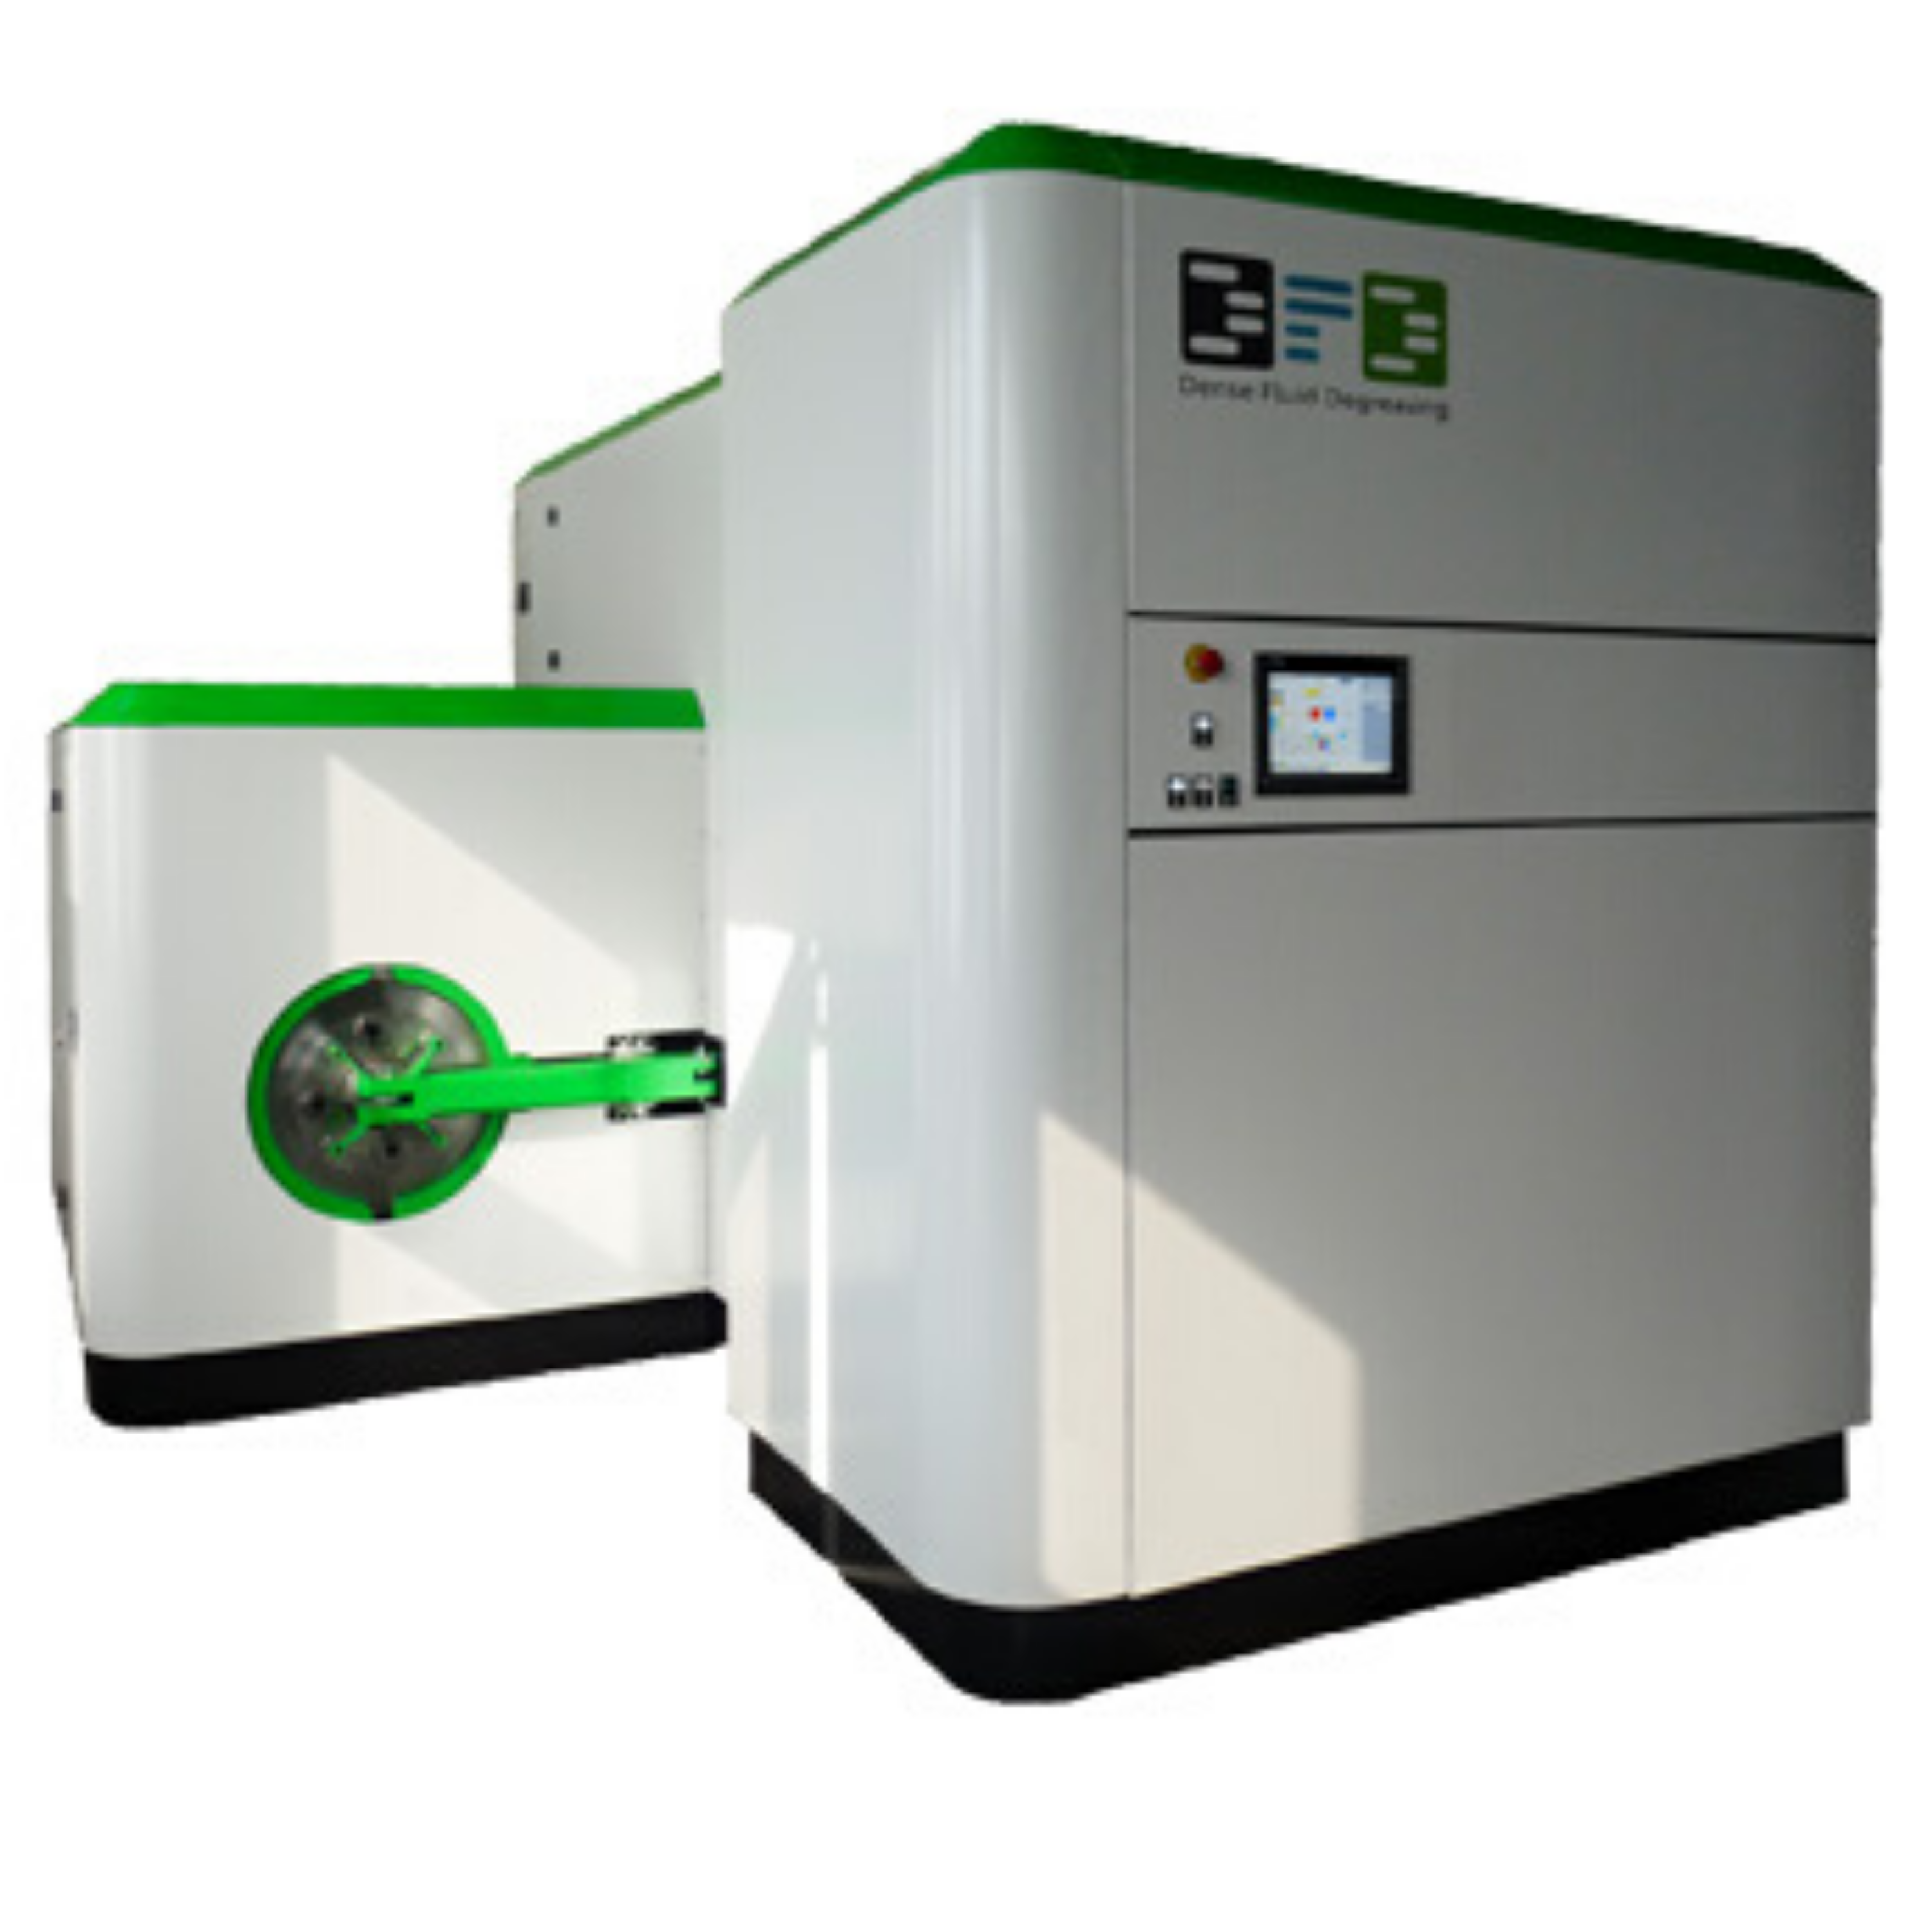 Front view of a supercritical CO2 cleaning machine manufactured by the company DFD